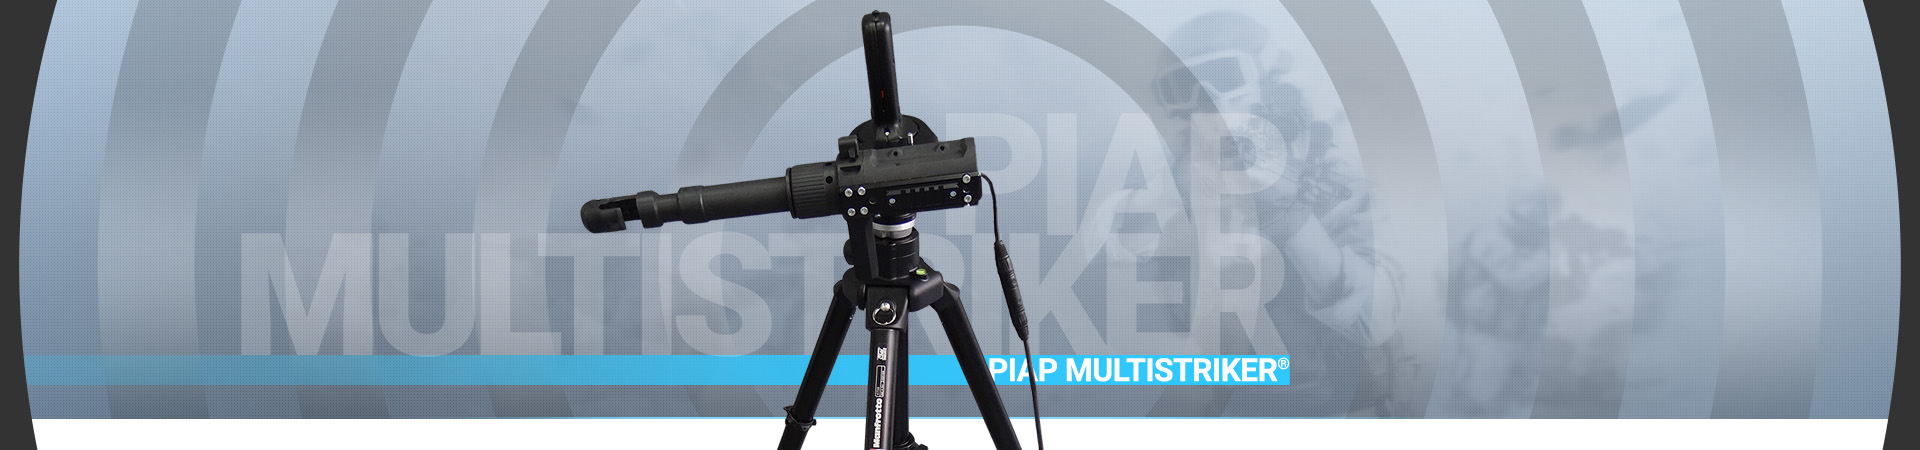 PIAP-MULTISTRIKER